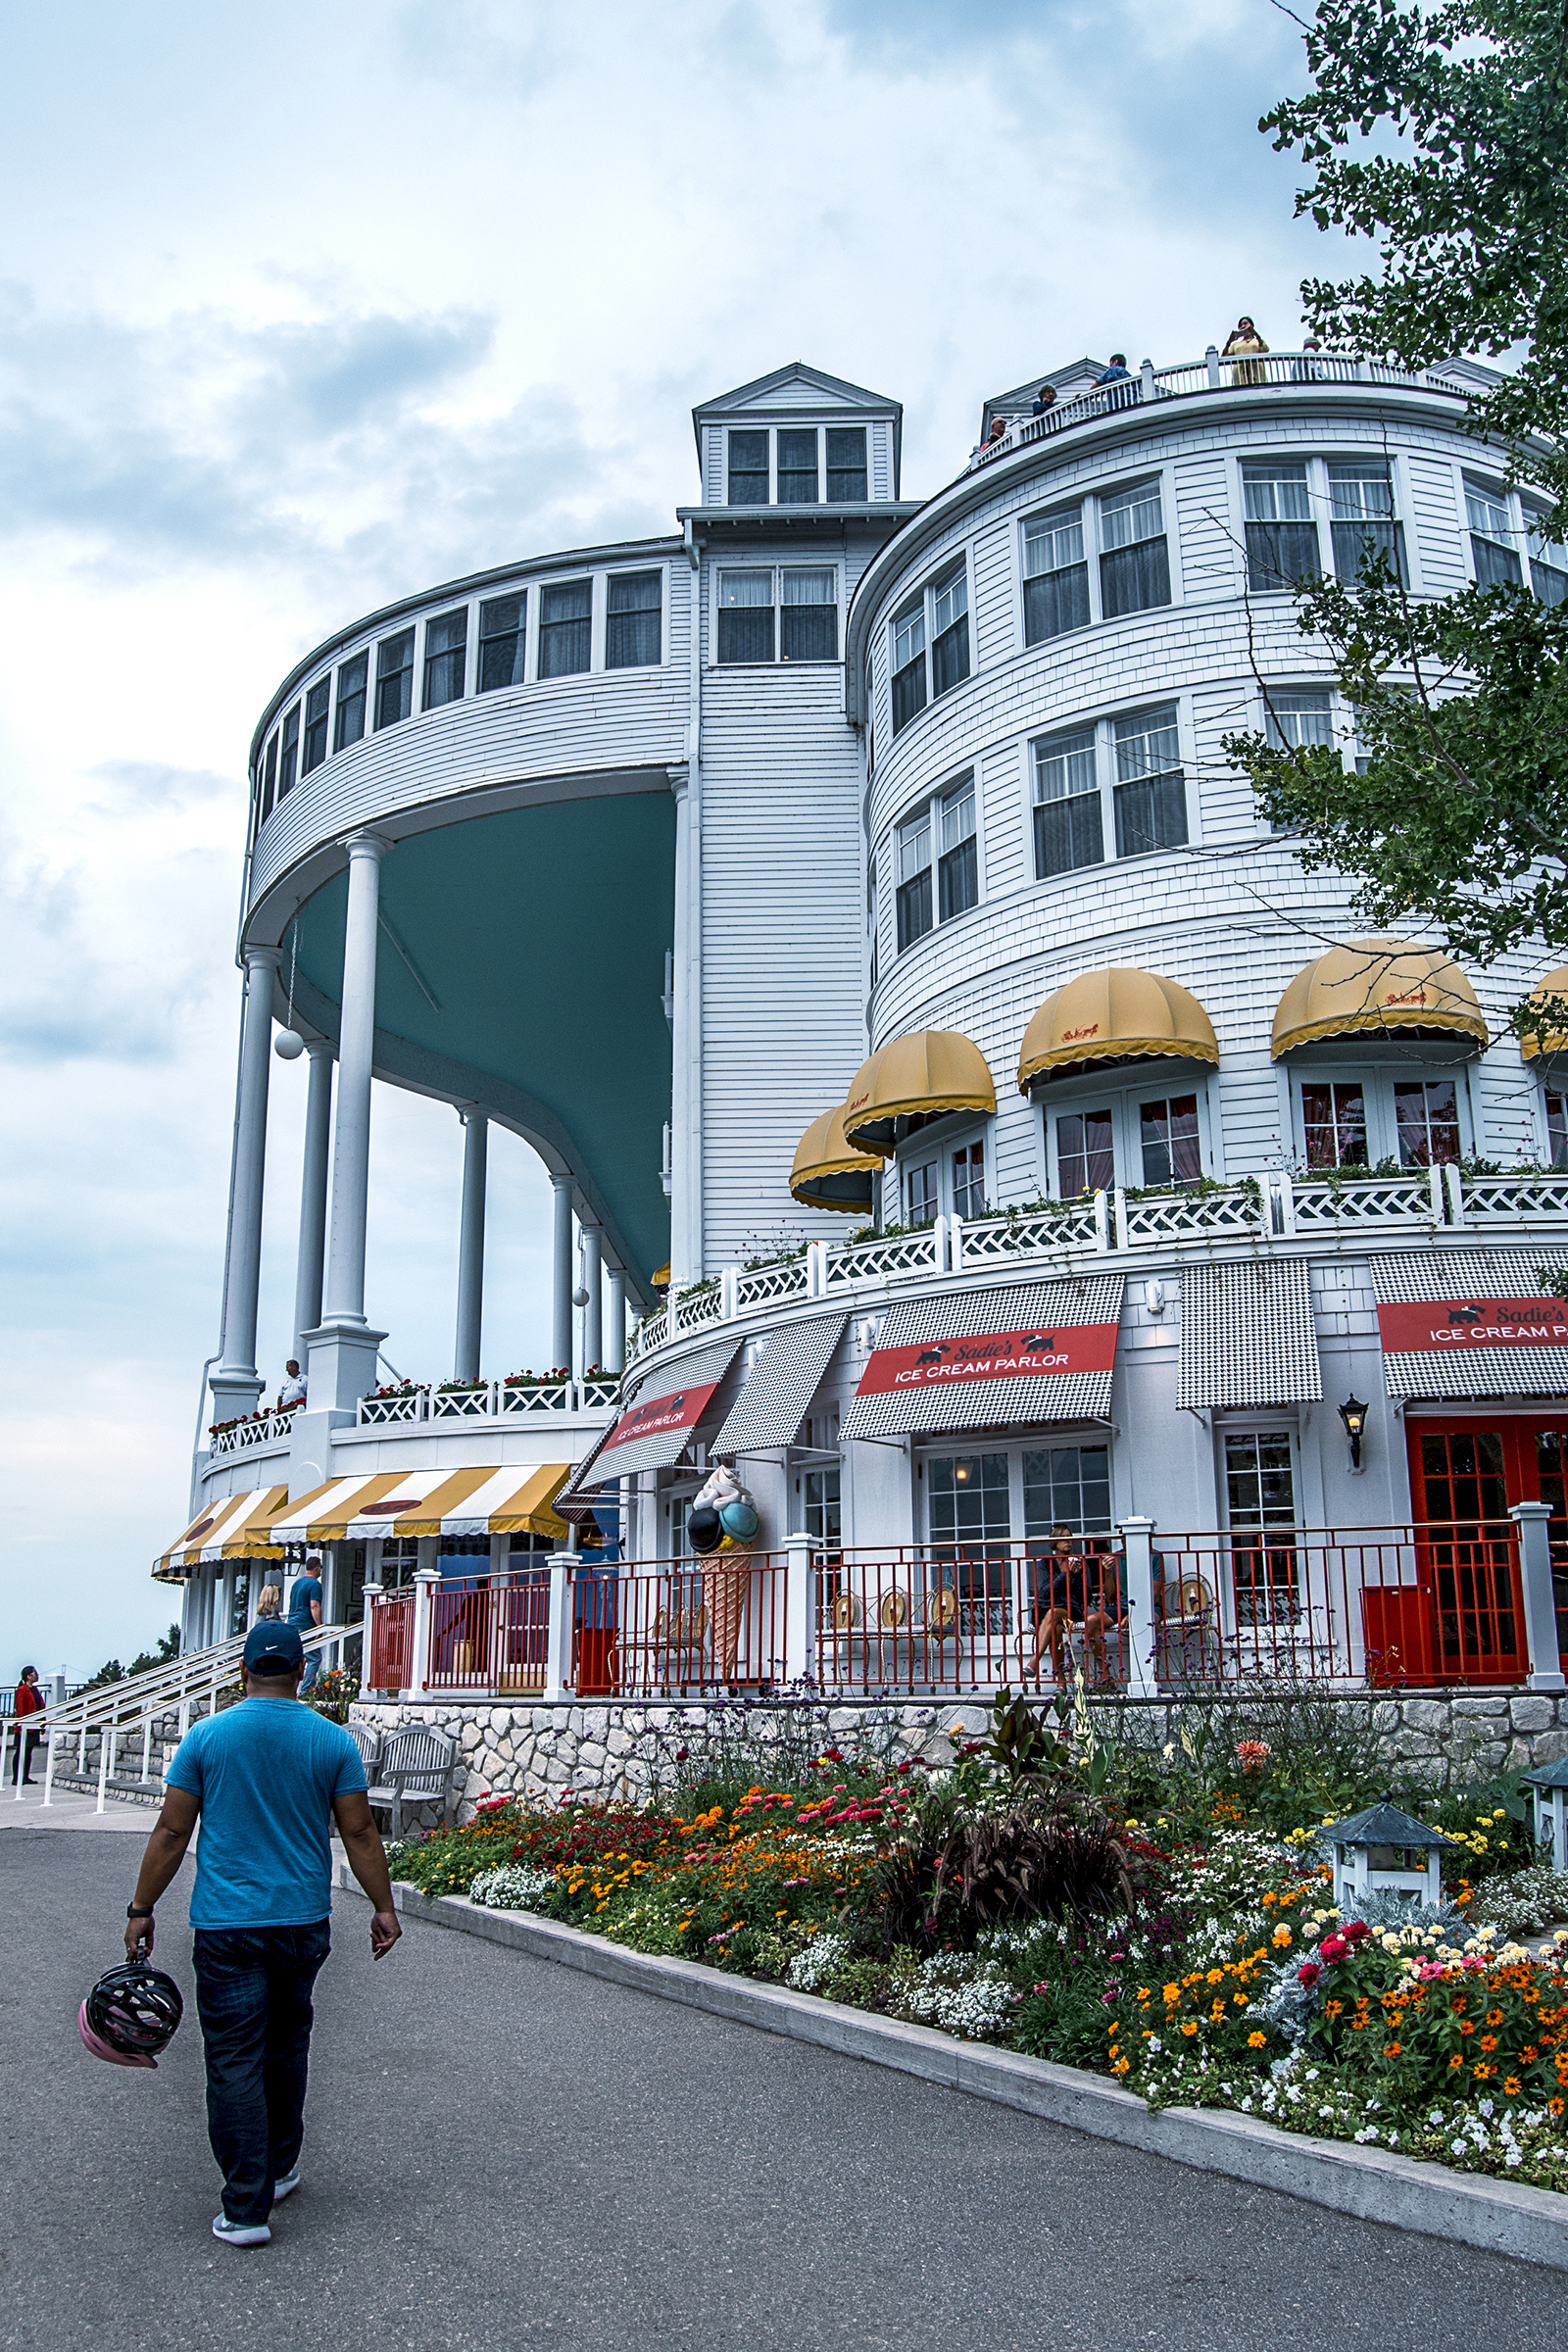 Come along with me on our long weekend on Mackinac Island! In this post, I share one of my favorite outfits from the trip: my new summer chambray sundress!